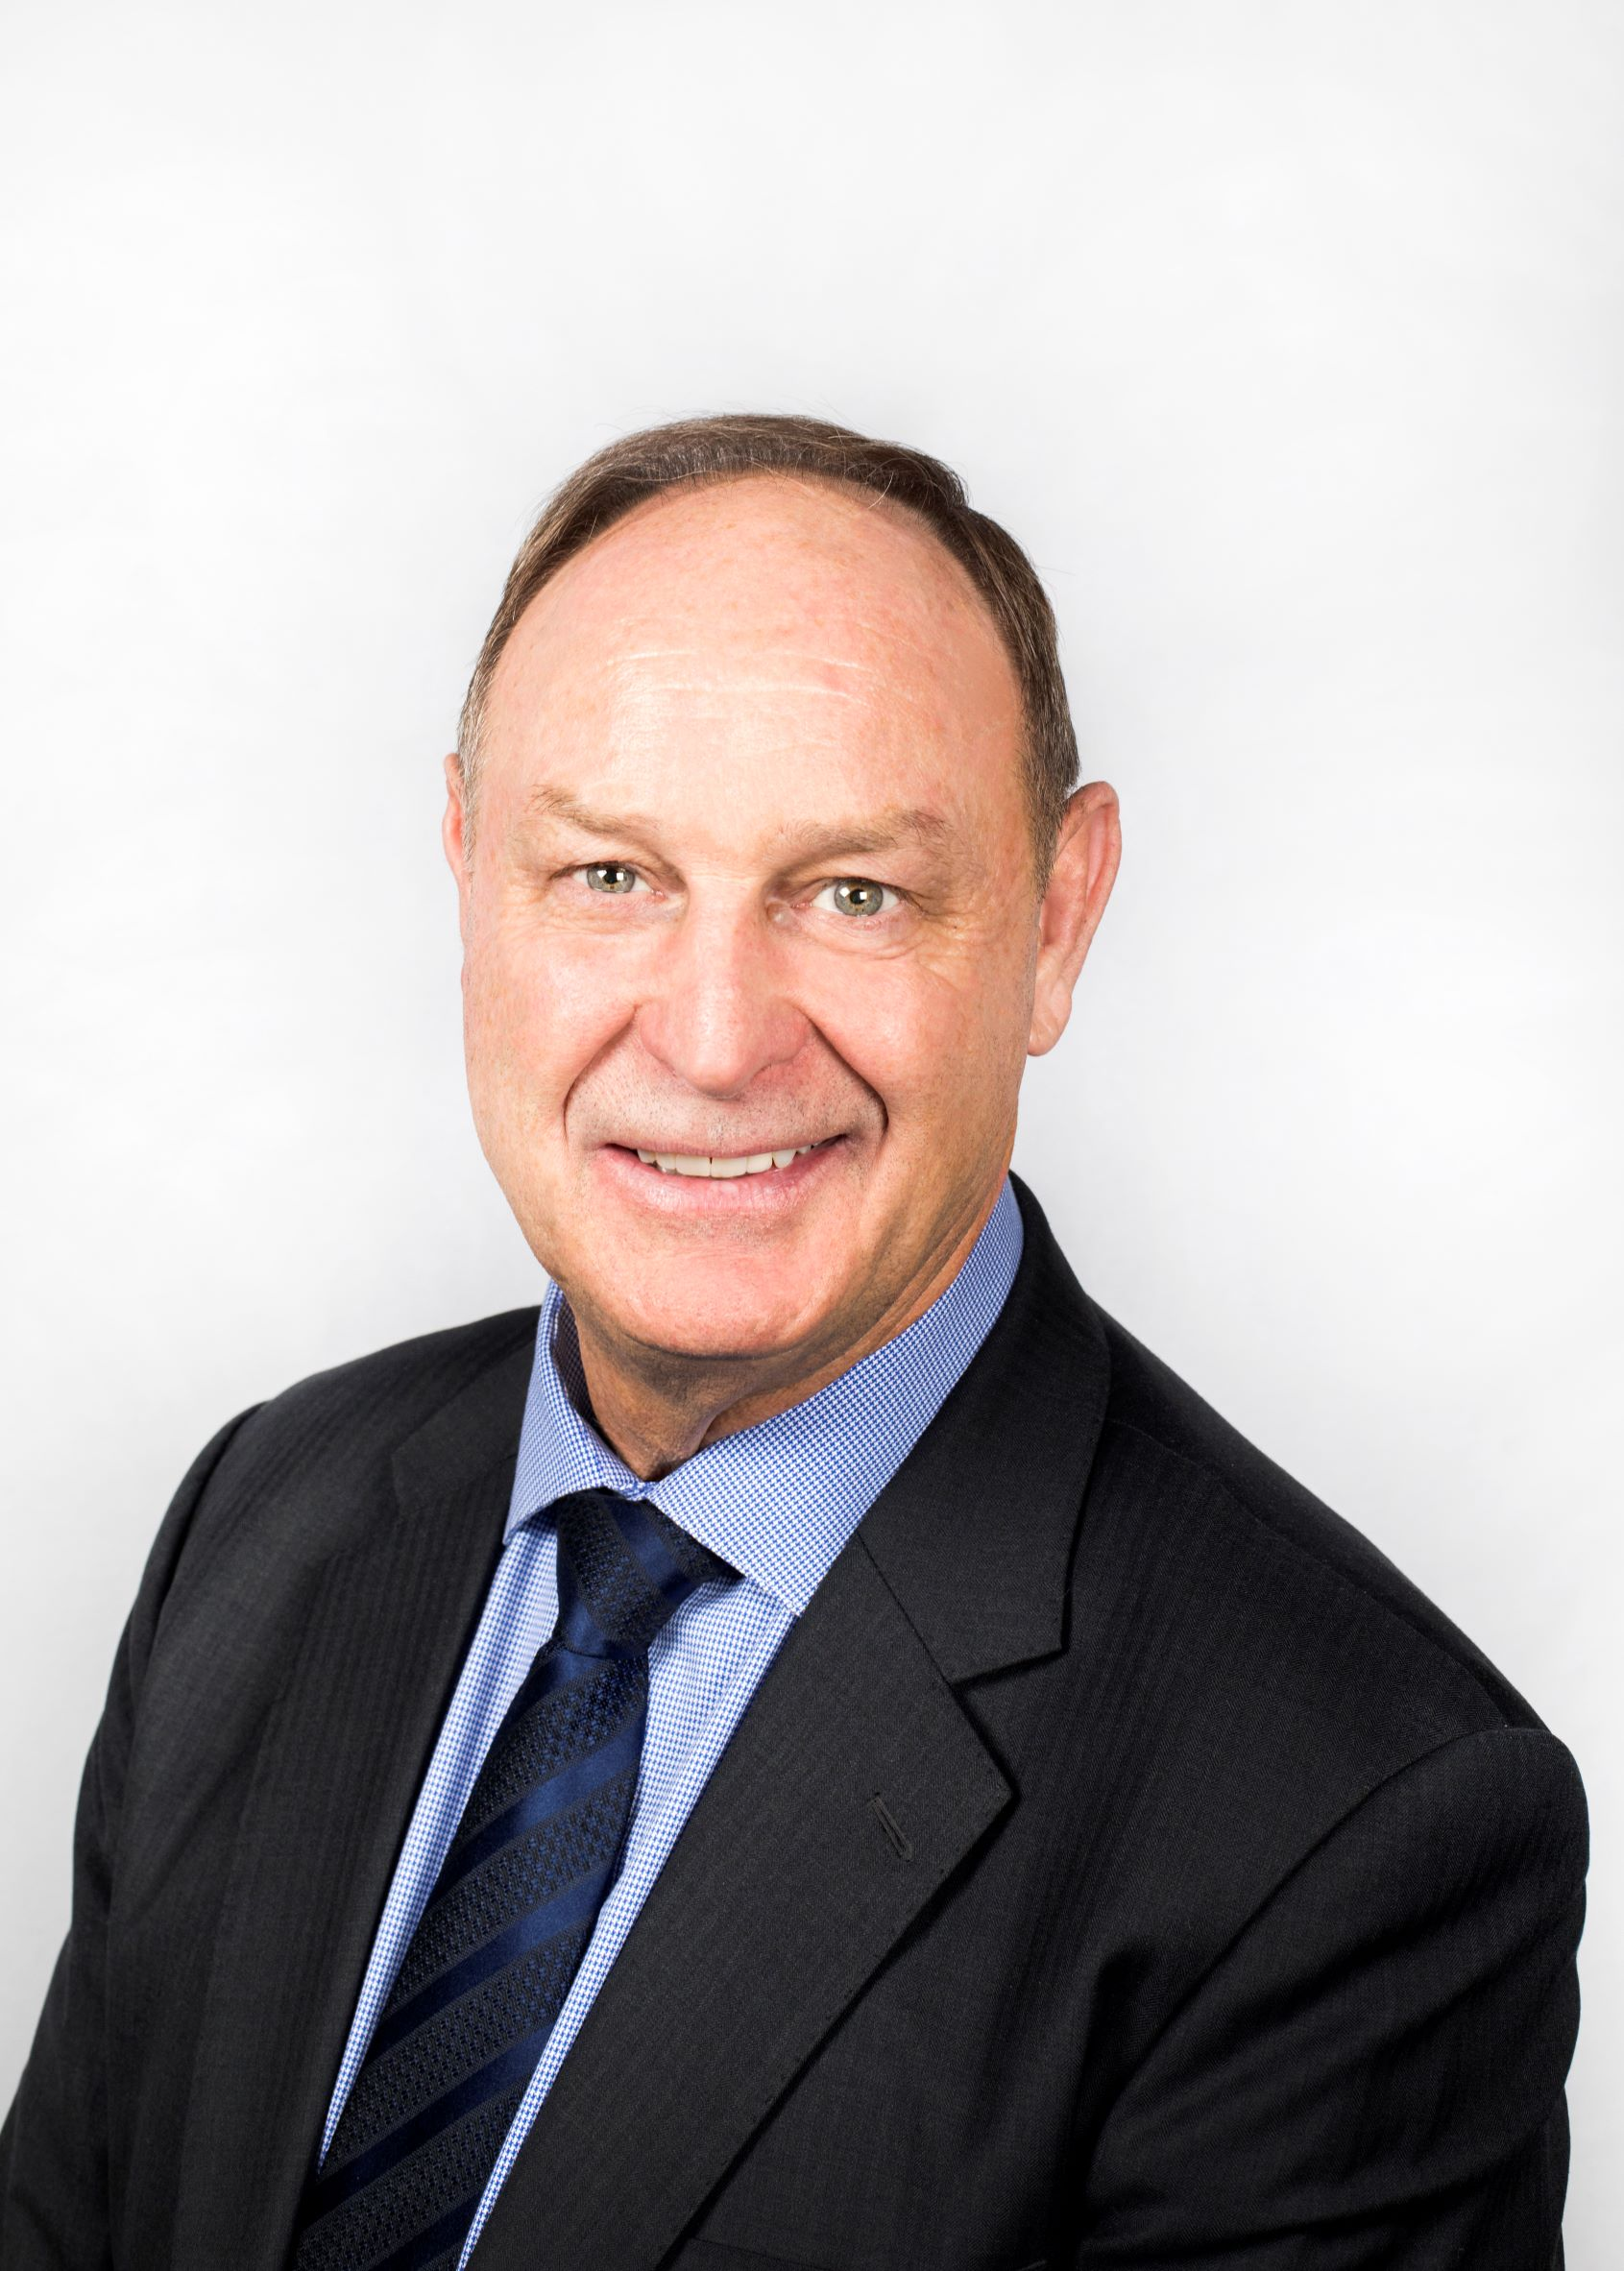 photo of John Yakabuski, the Minister of Natural Resources and Forestry